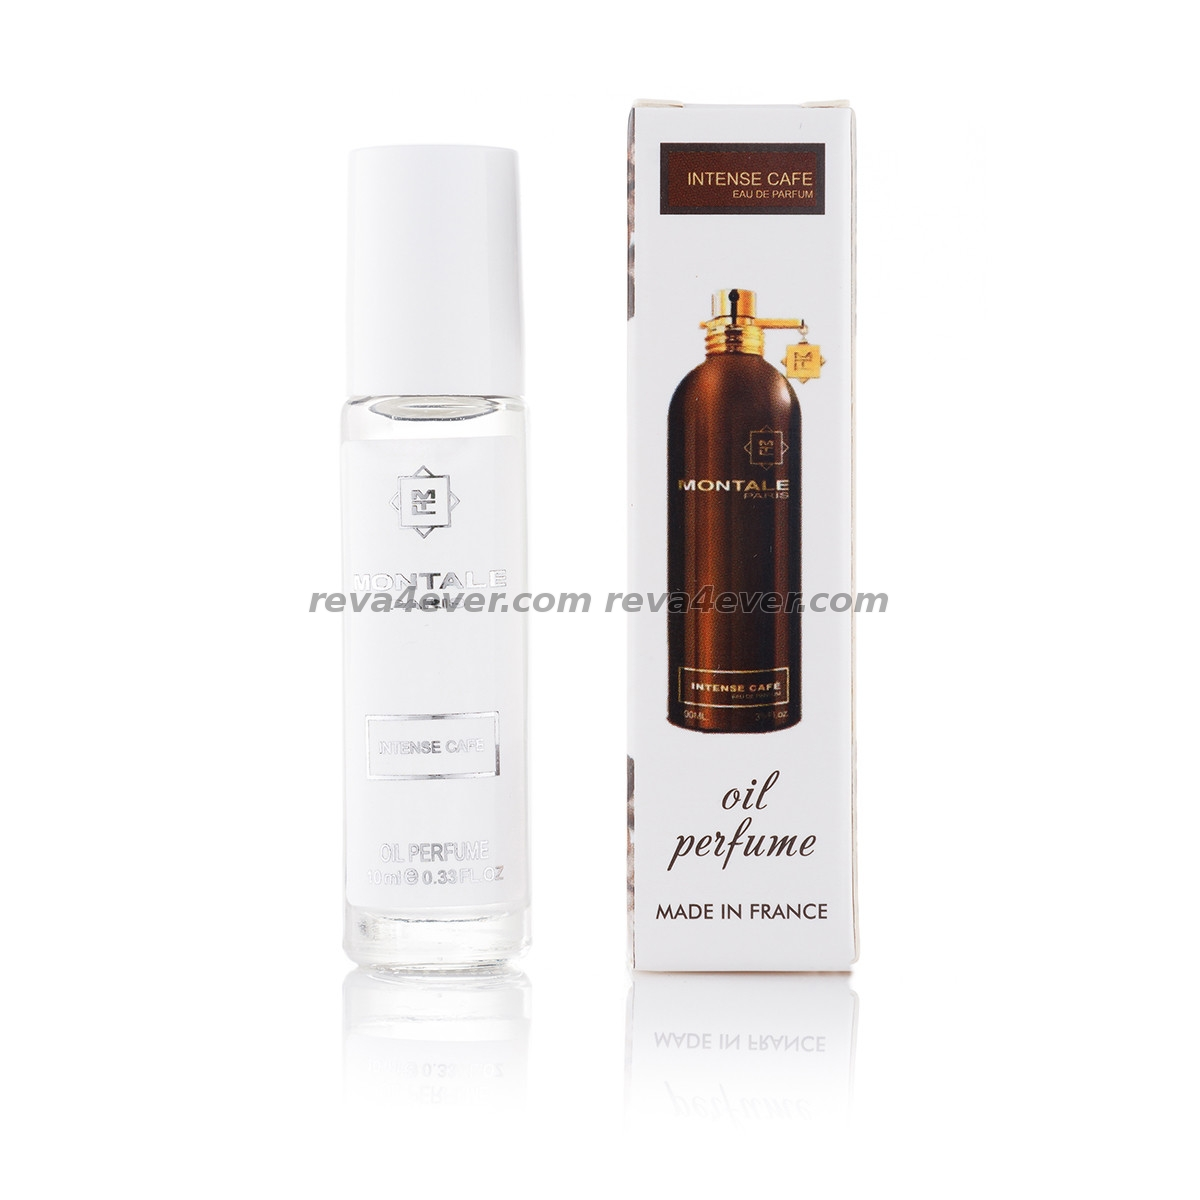 Montale Intense Cafe 10 ml oil perfume